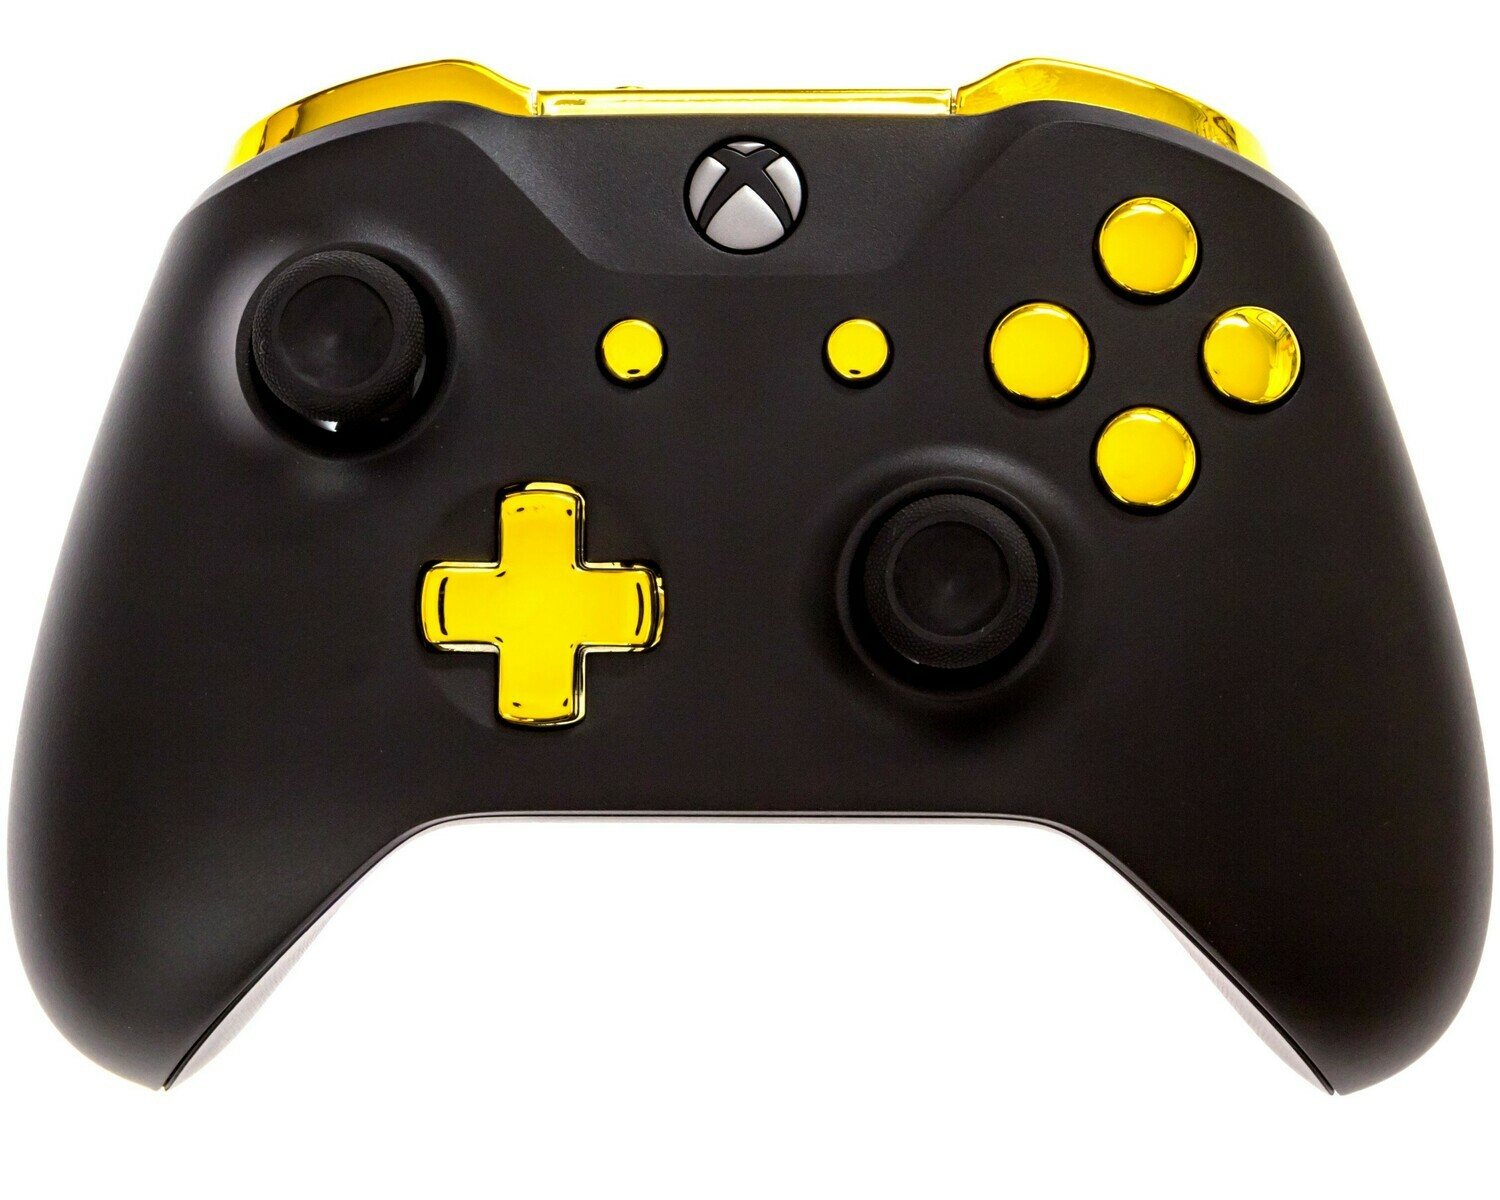 10,000 Mode Modded Controllers Gold Out Mod Controller Xb1